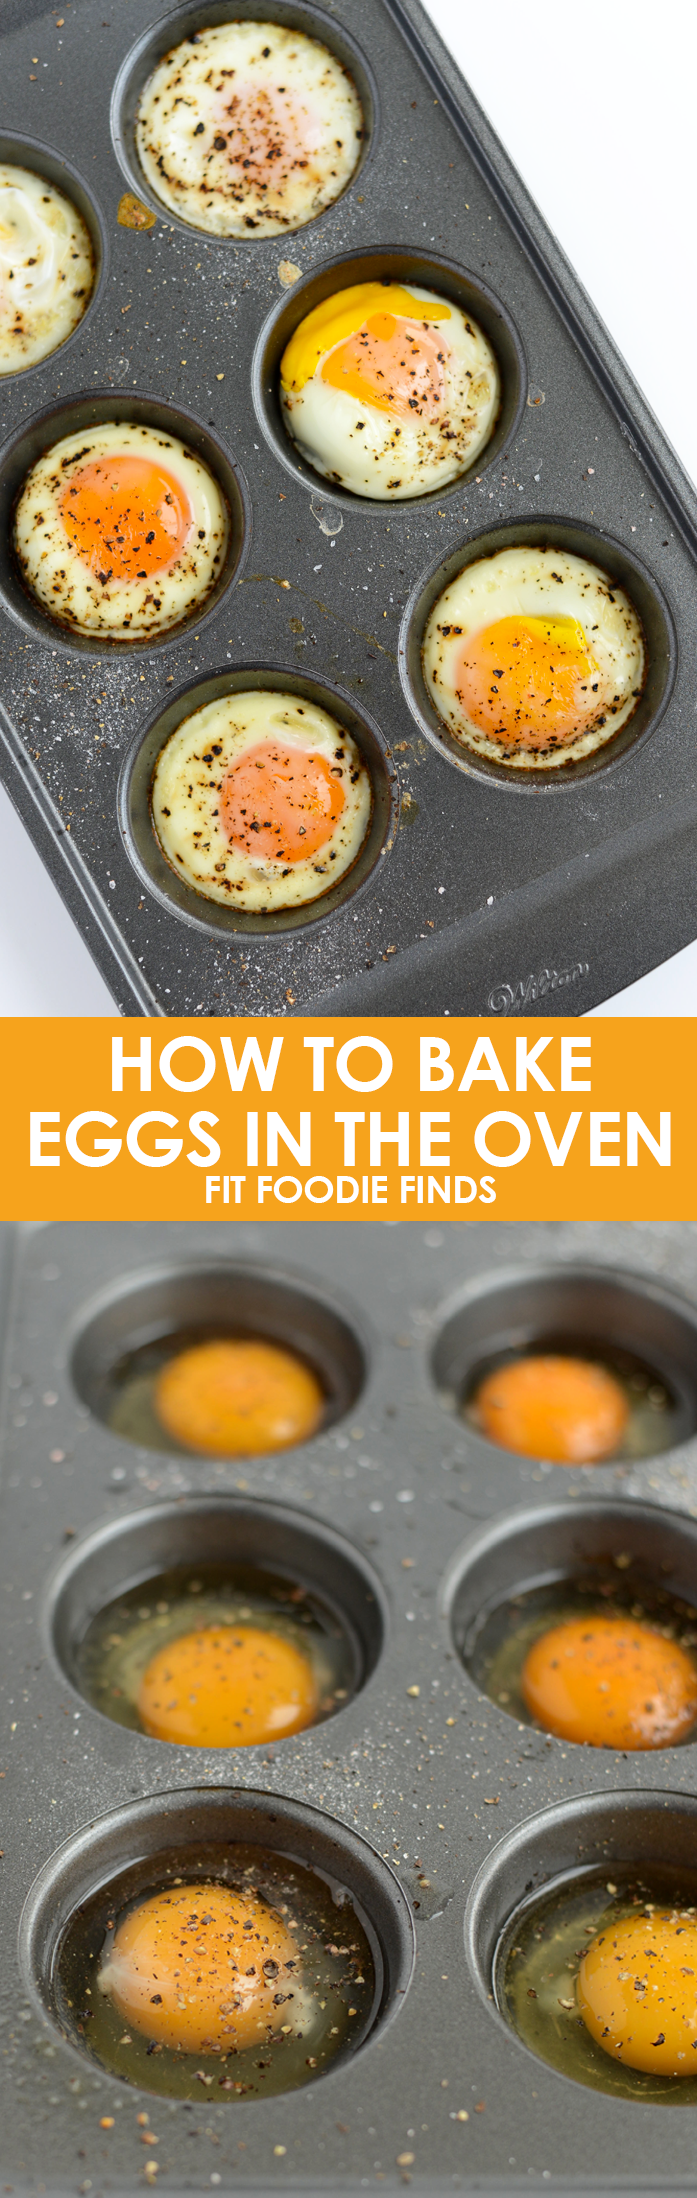 Have You Ever Baked Eggs In The Oven? They Have The Texture Of A Hard